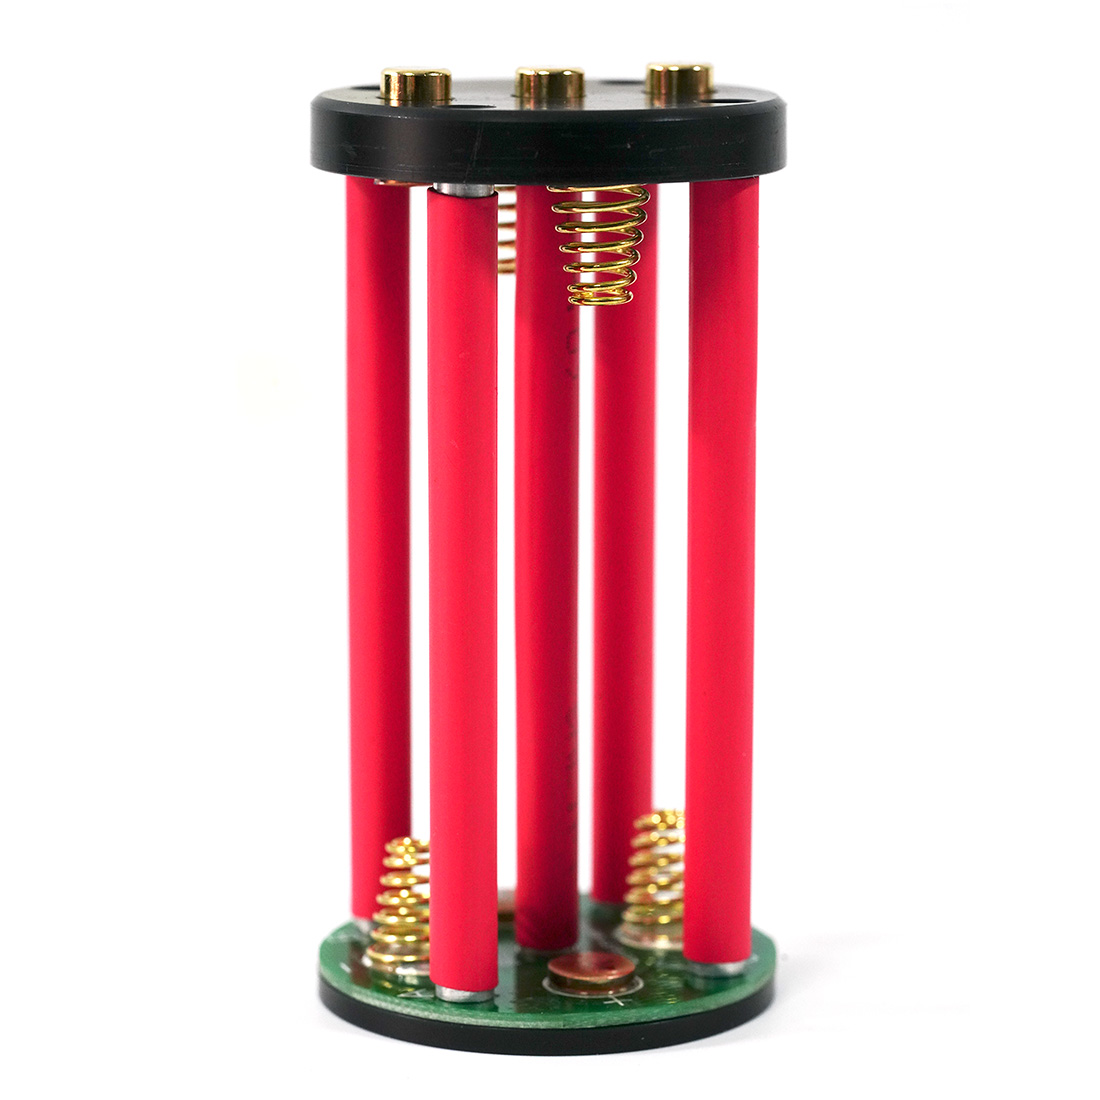 Battery-Holder Makes 18650 Bracket 4pcs Max-To-16.8v Up-The-Voltage And In-Series 4S